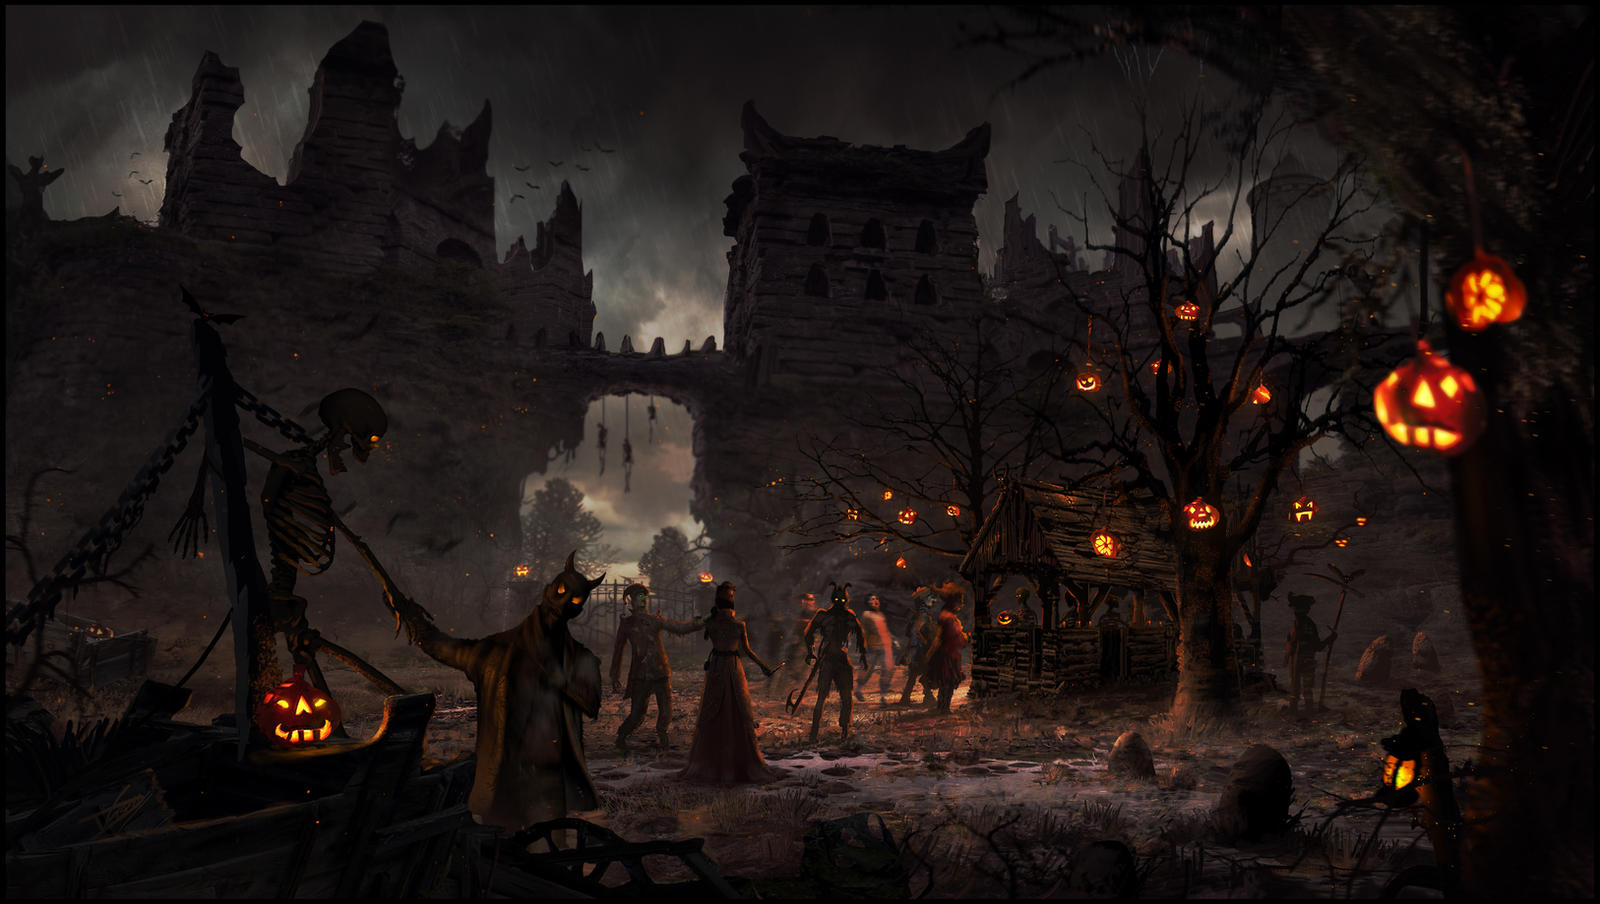 The haunted festival by DominiquevVelsen